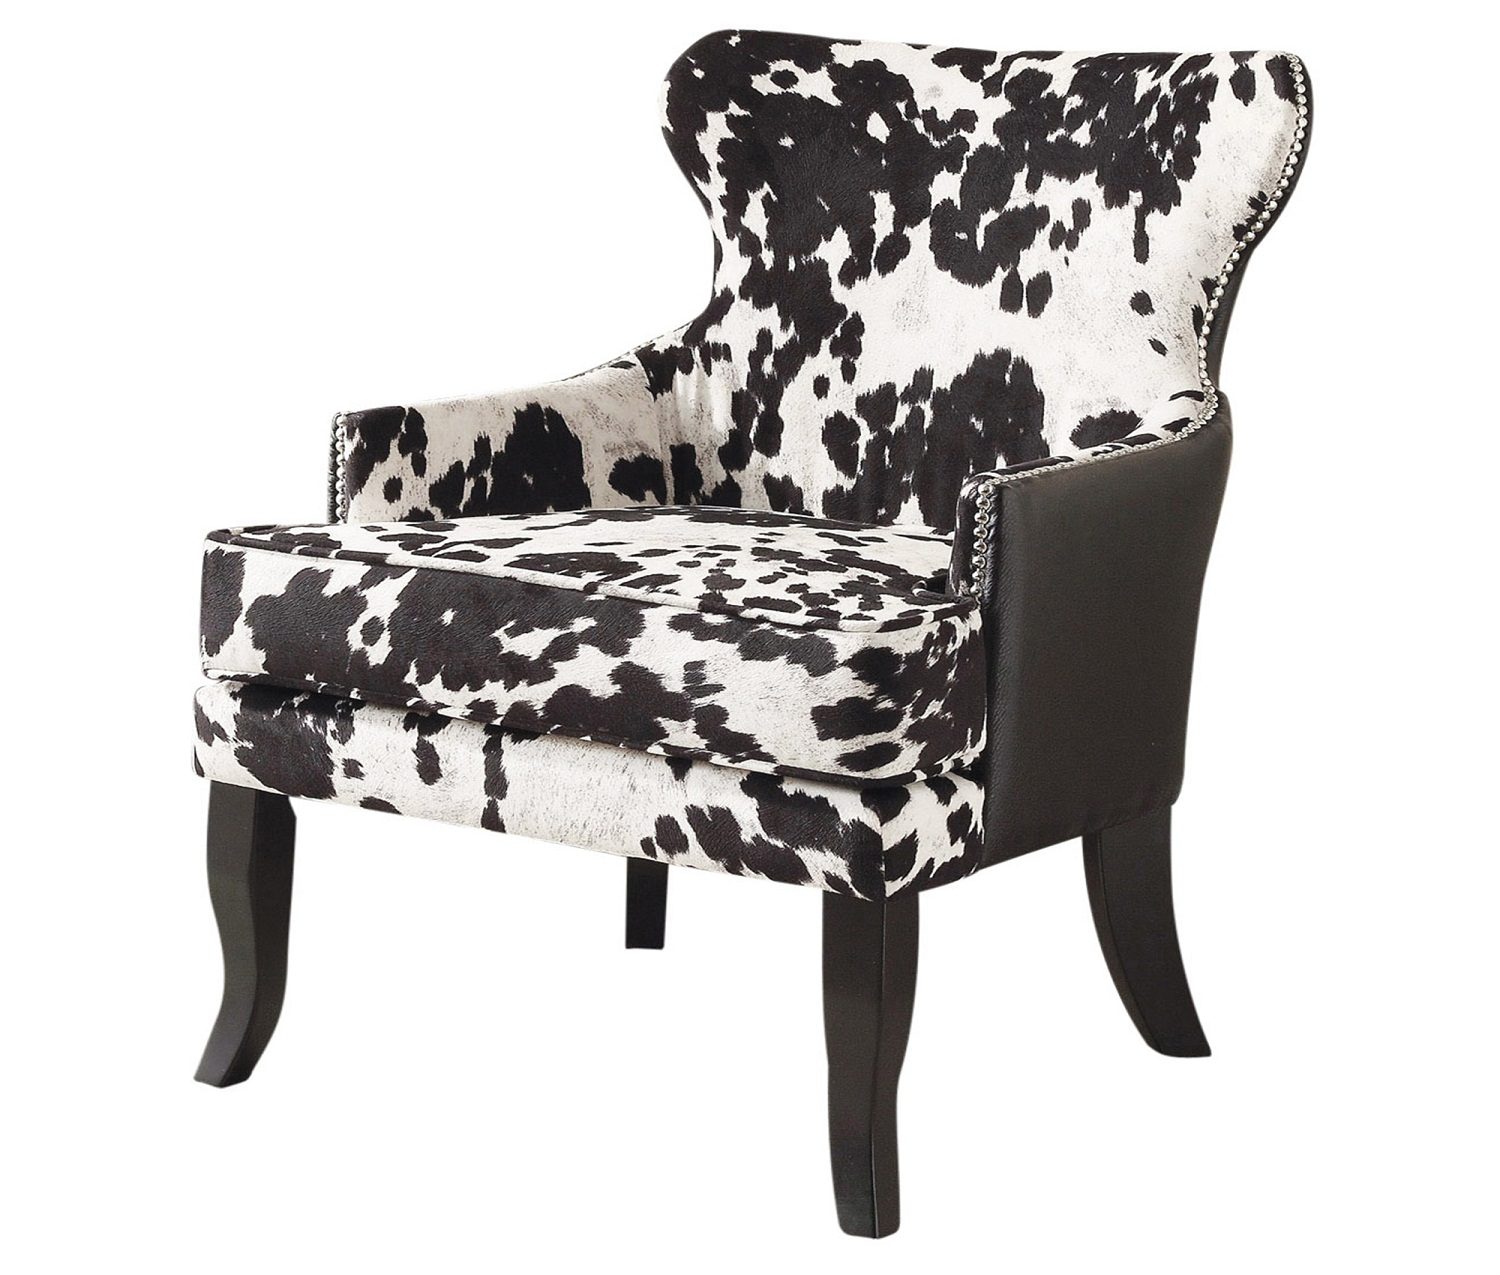 ANGUS II-ACCENT CHAIR-BLACK, 841173015640, Accent Chairs by Midha Furniture to Brampton, Mississauga, Etobicoke, Toronto, Scraborough, Caledon, Oakville, Markham, Ajax, Pickering, Oshawa, Richmondhill, Kitchener, Hamilton and GTA area